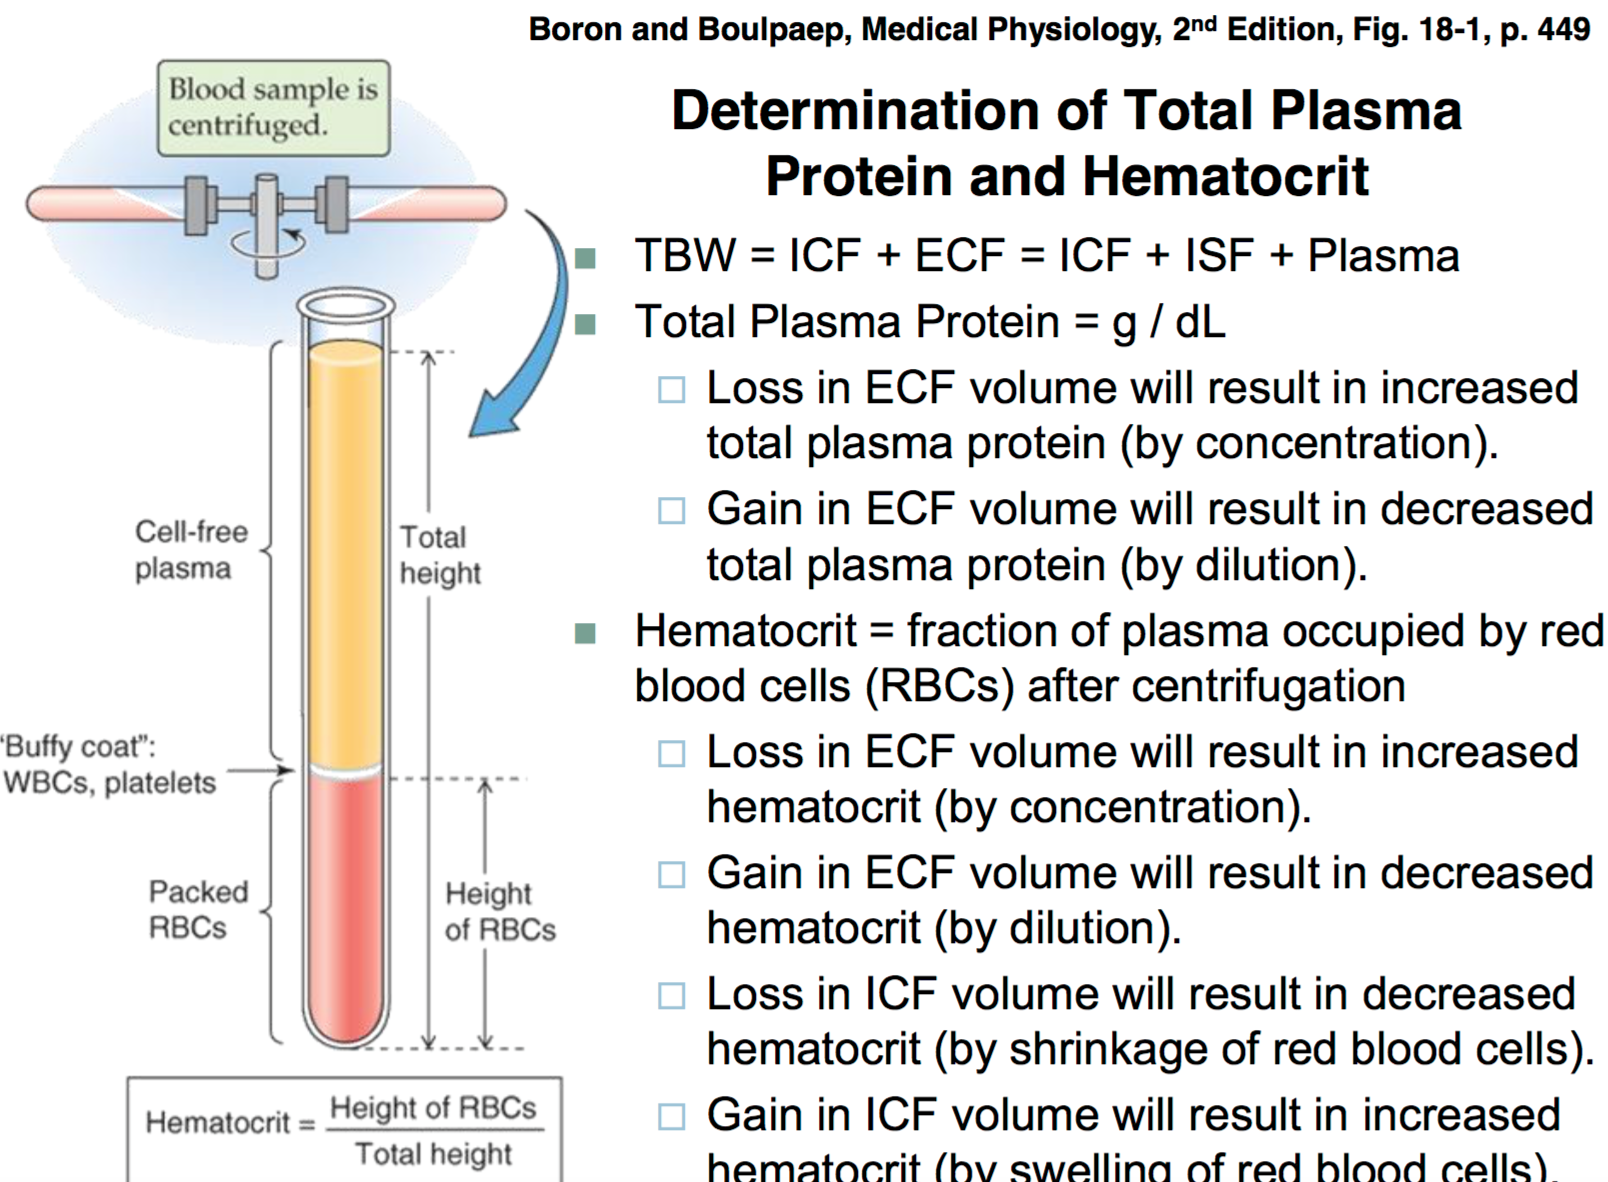 volume of water equation. gain in ecf volume will result decreased total plasma protein (by dilution) of water equation